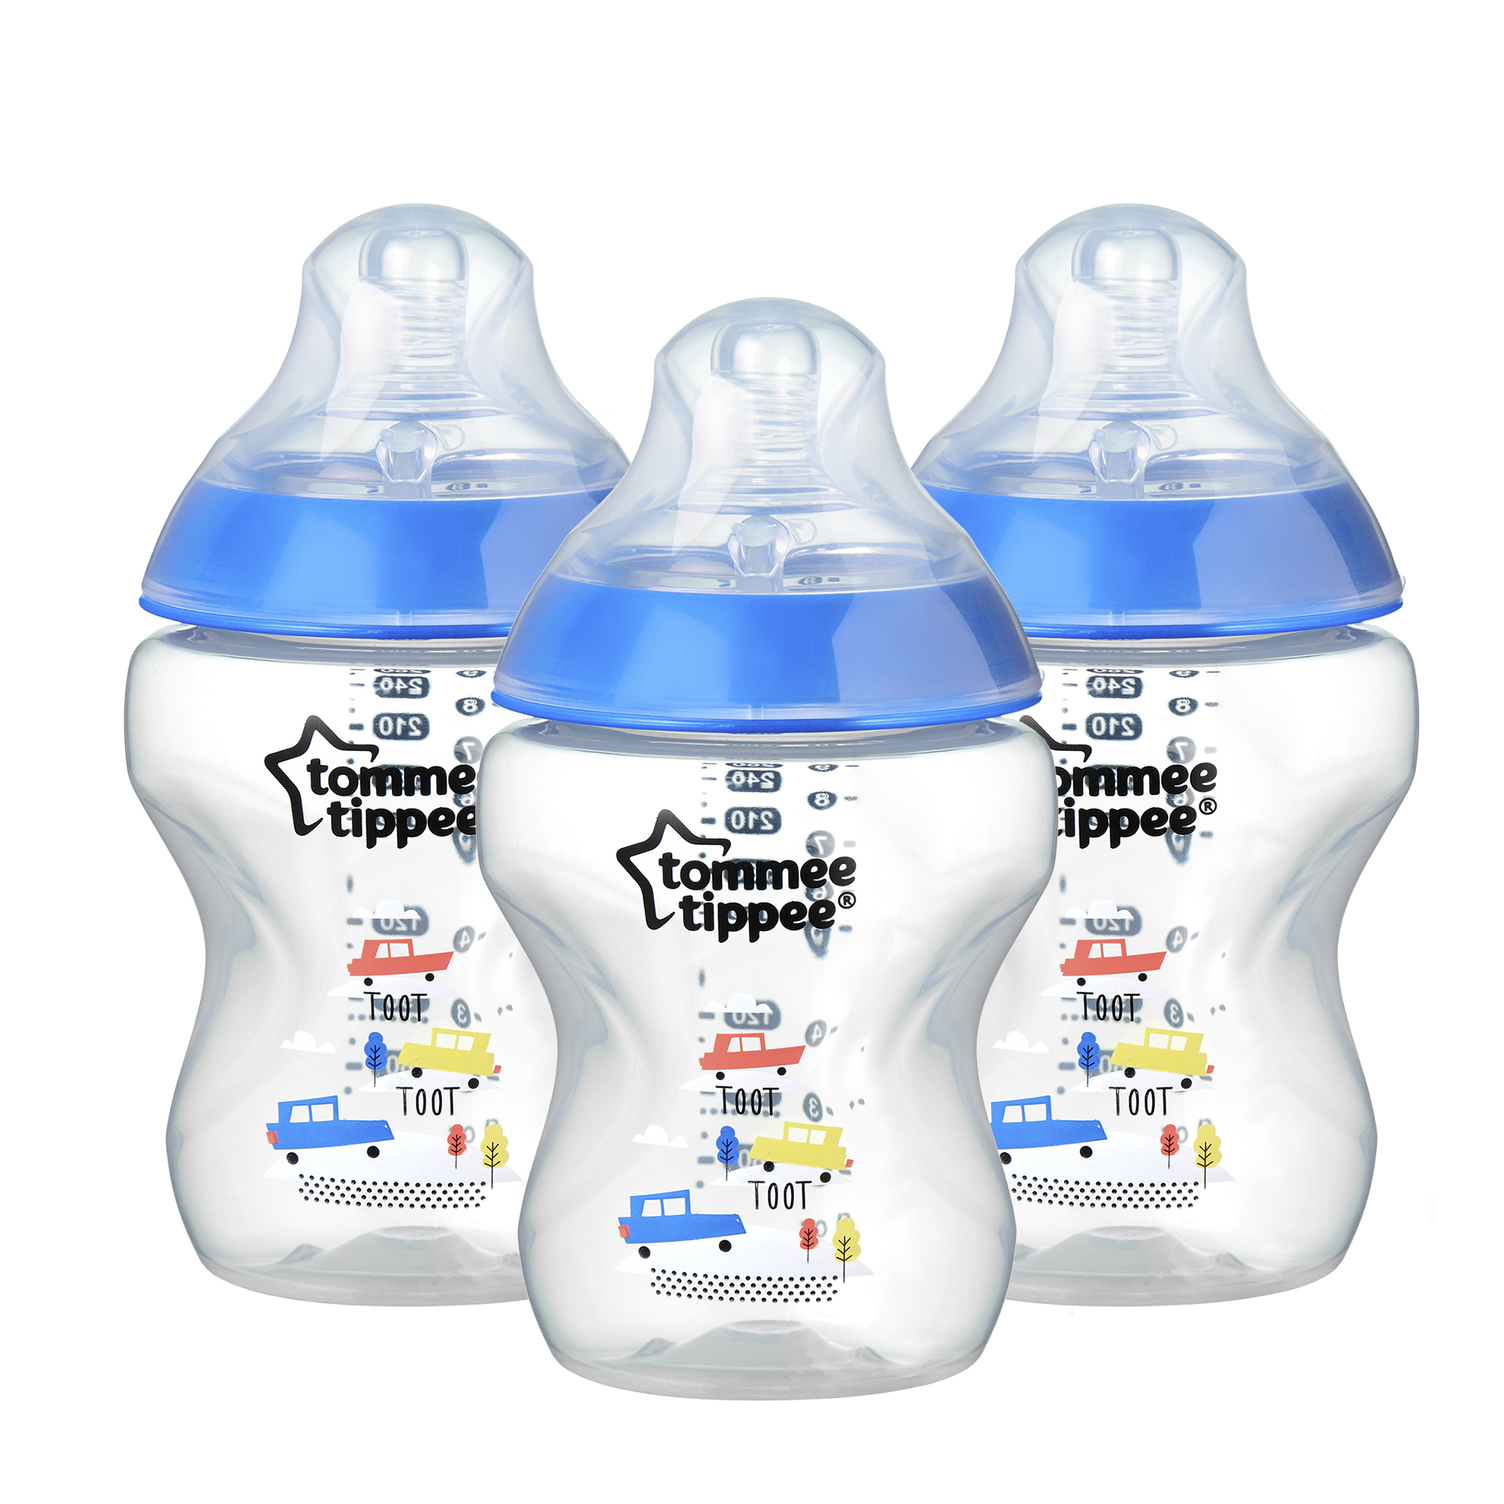 Tommee Tippee Closer to Nature Baby Bottles – 9 ounces, Blue, 3 Count